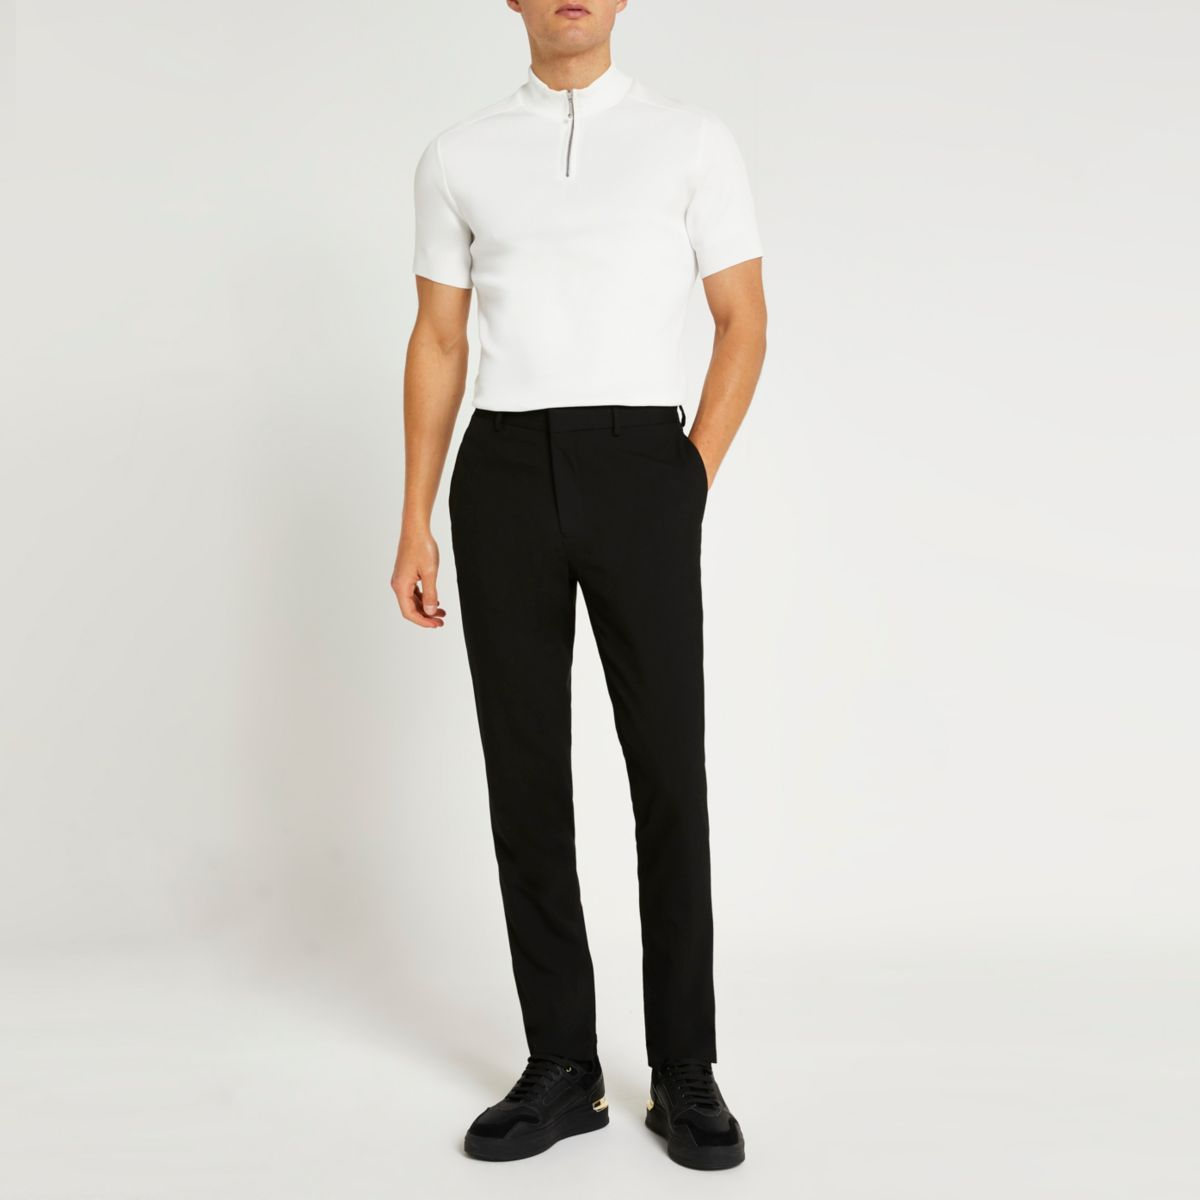 Black slim fit smart trousers - Smart Trousers - Trousers ...